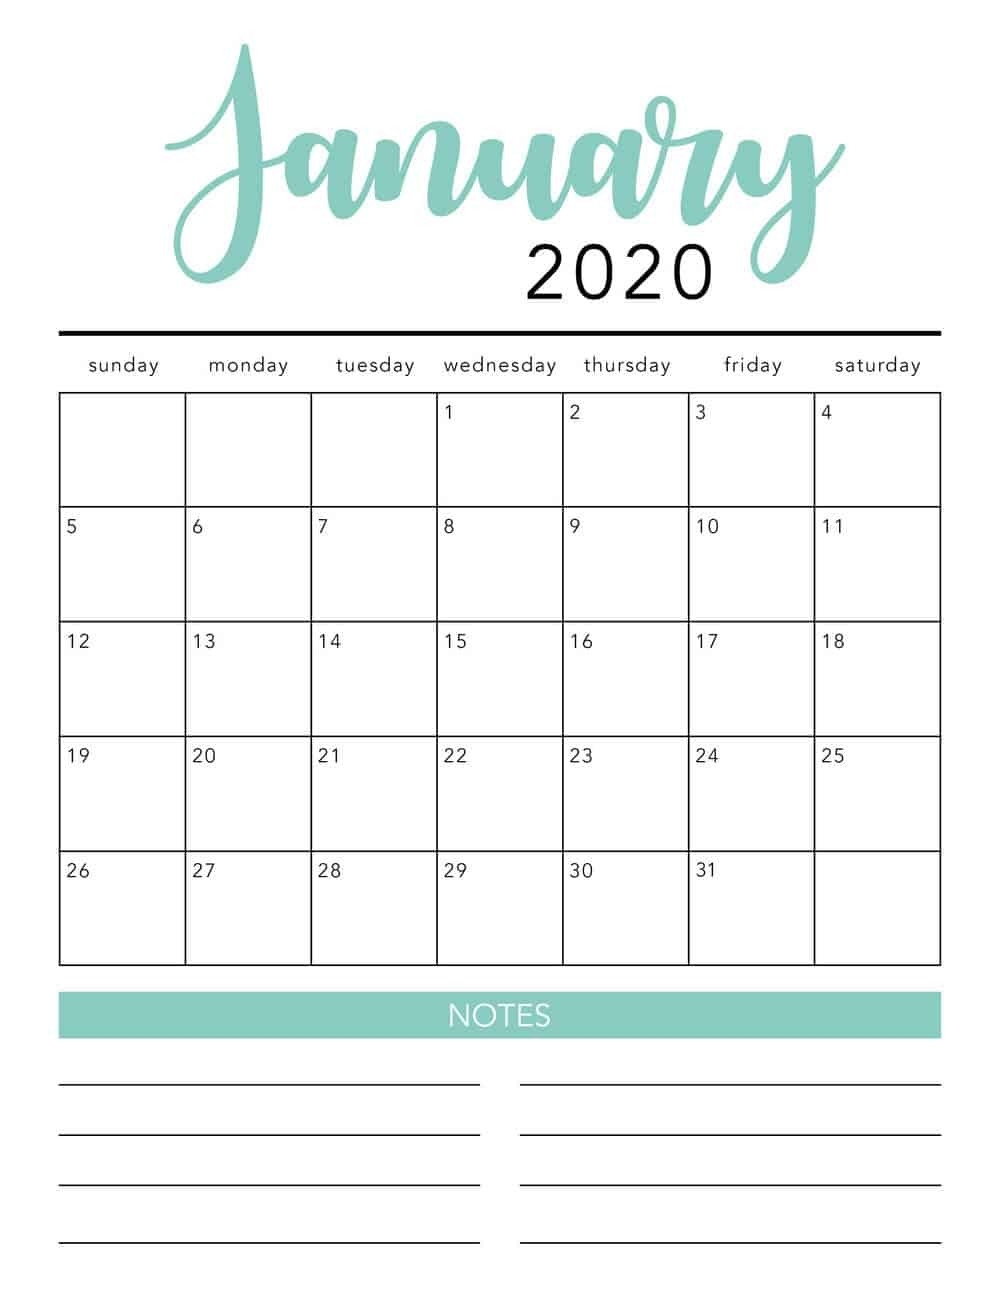 2020 Monthly Planner Printable - Remar-2020 Monthly Bill Planner Printable